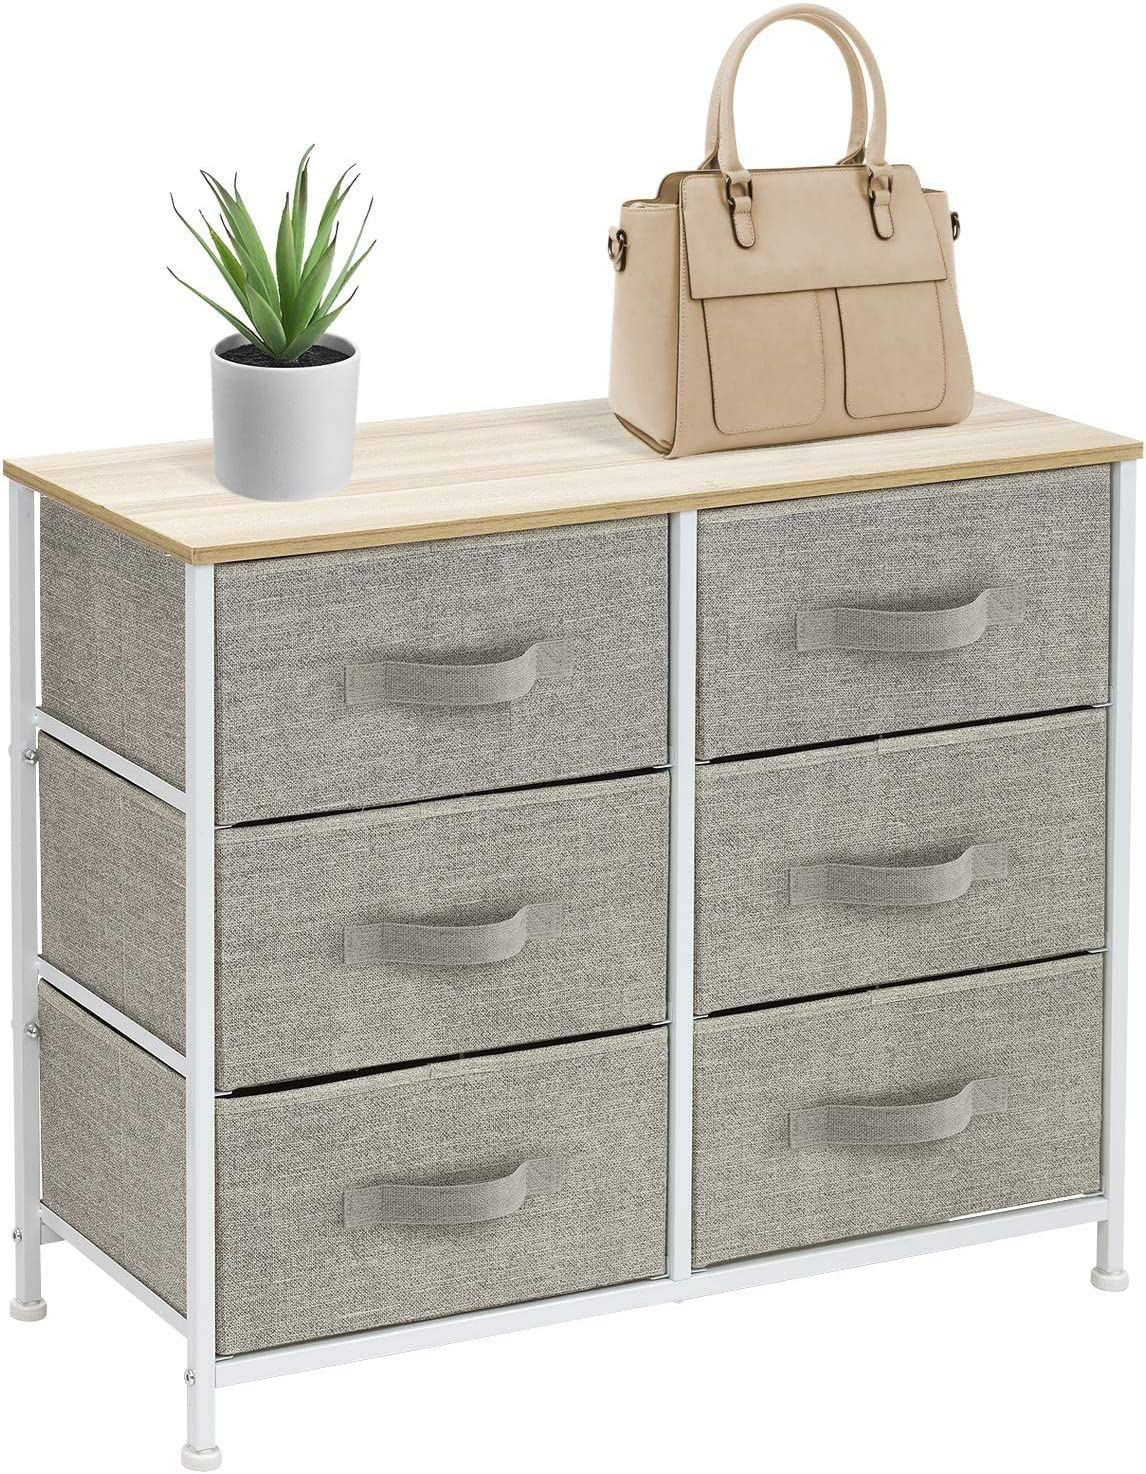 Sorbus Dresser with 6 Drawers - Furniture Storage Tower Unit for Bedroom, Hallway, Closet, Office Organization - Steel Frame, Wood Top, Easy Pull Fabric Bins (6 Drawer - Beige)